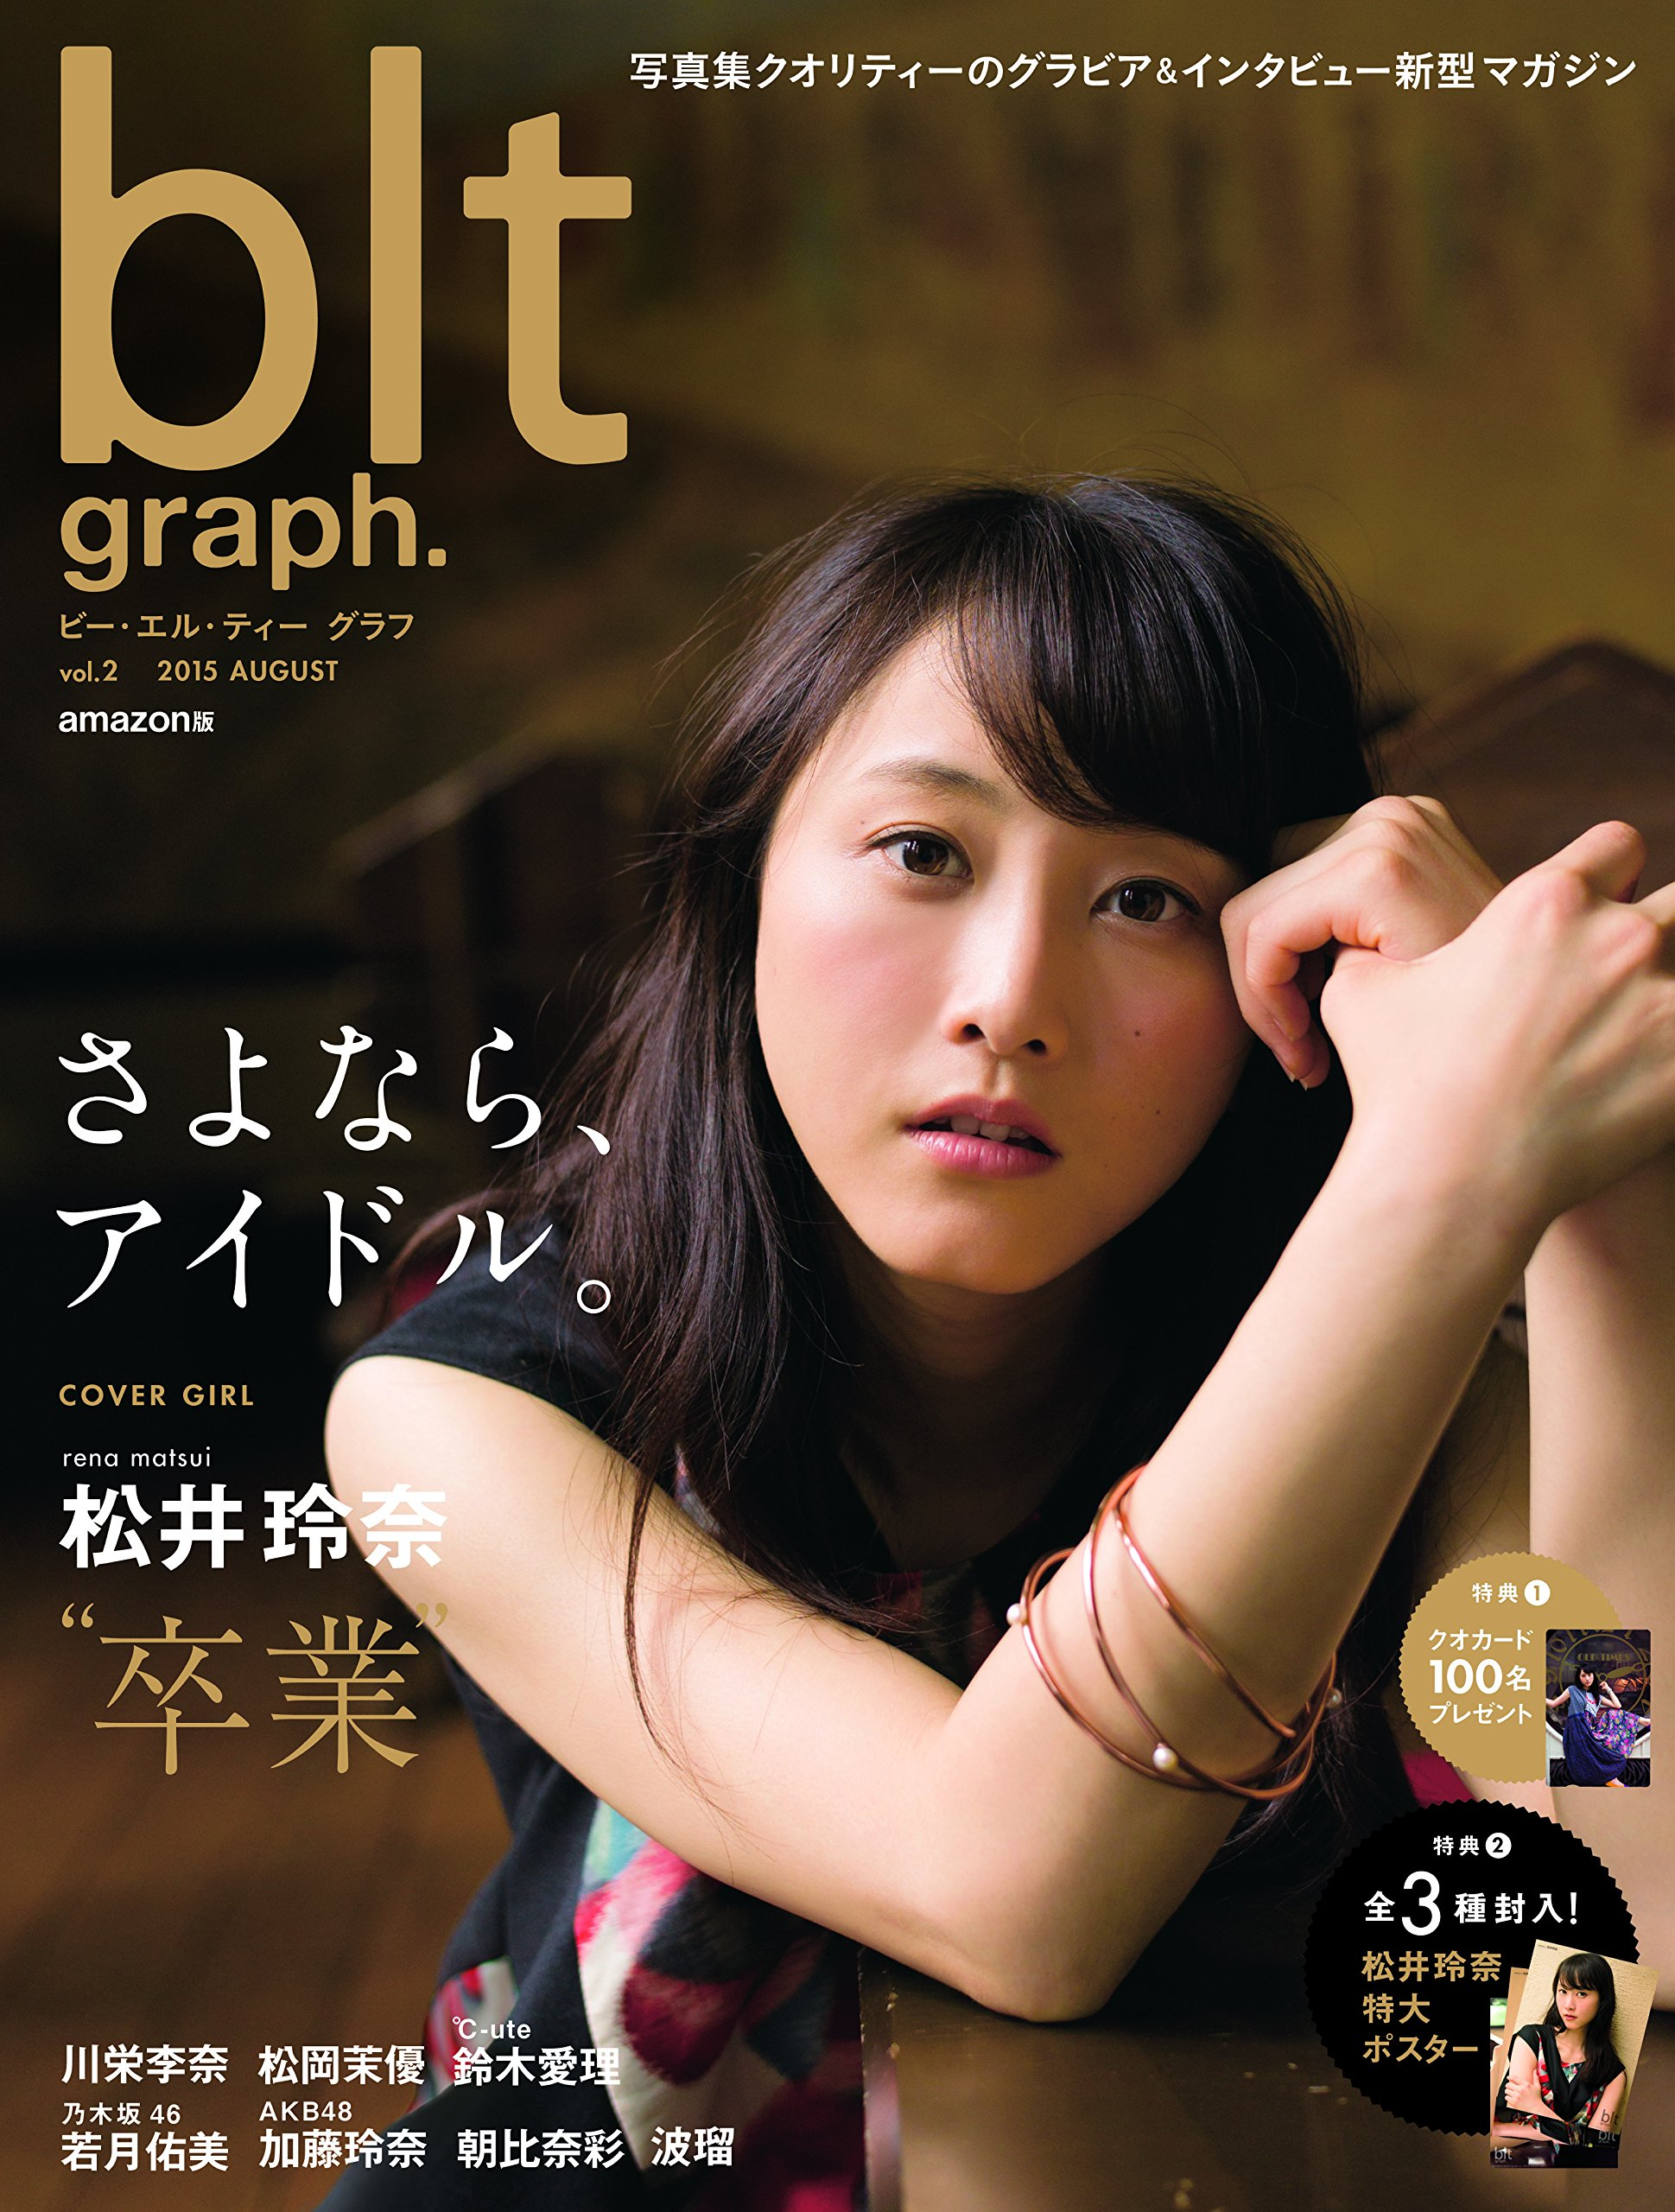 松井玲奈 blt graph. vol.2